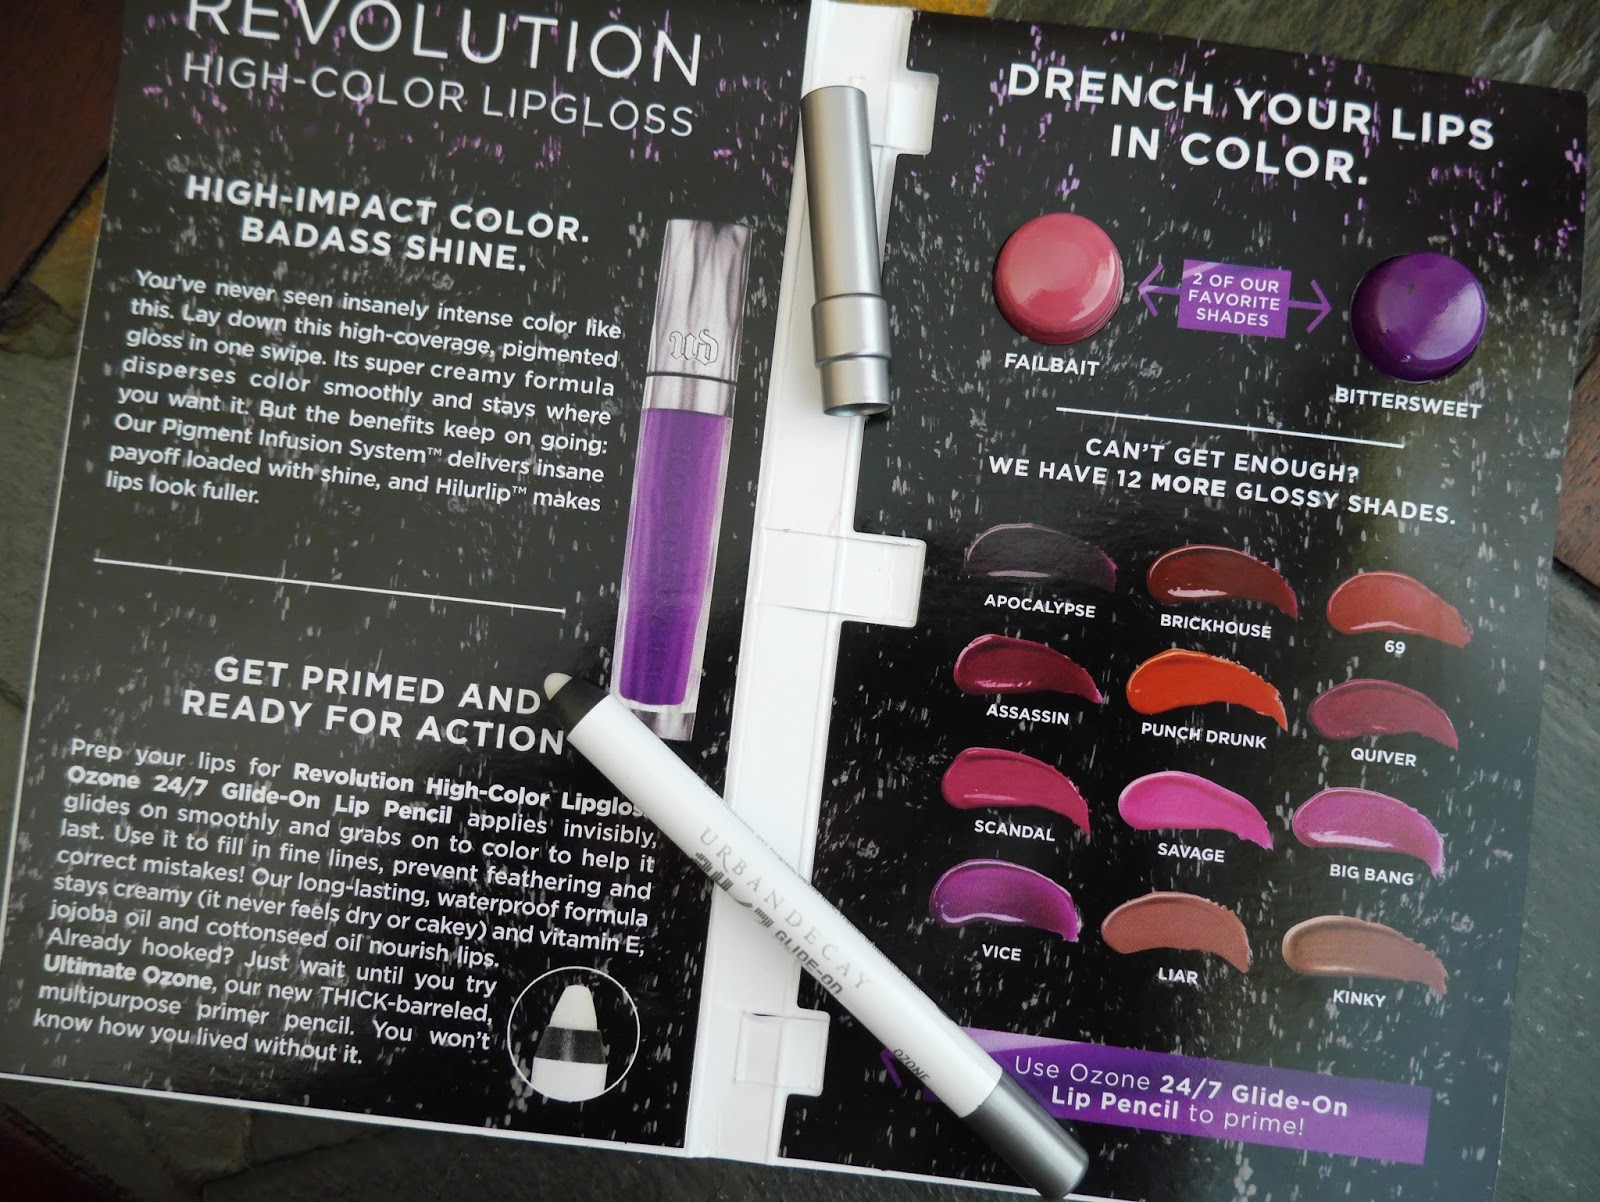 Urban Decay 24/7 Glide on Lip Pencil + BONUS Revolution High-Color Lipgloss